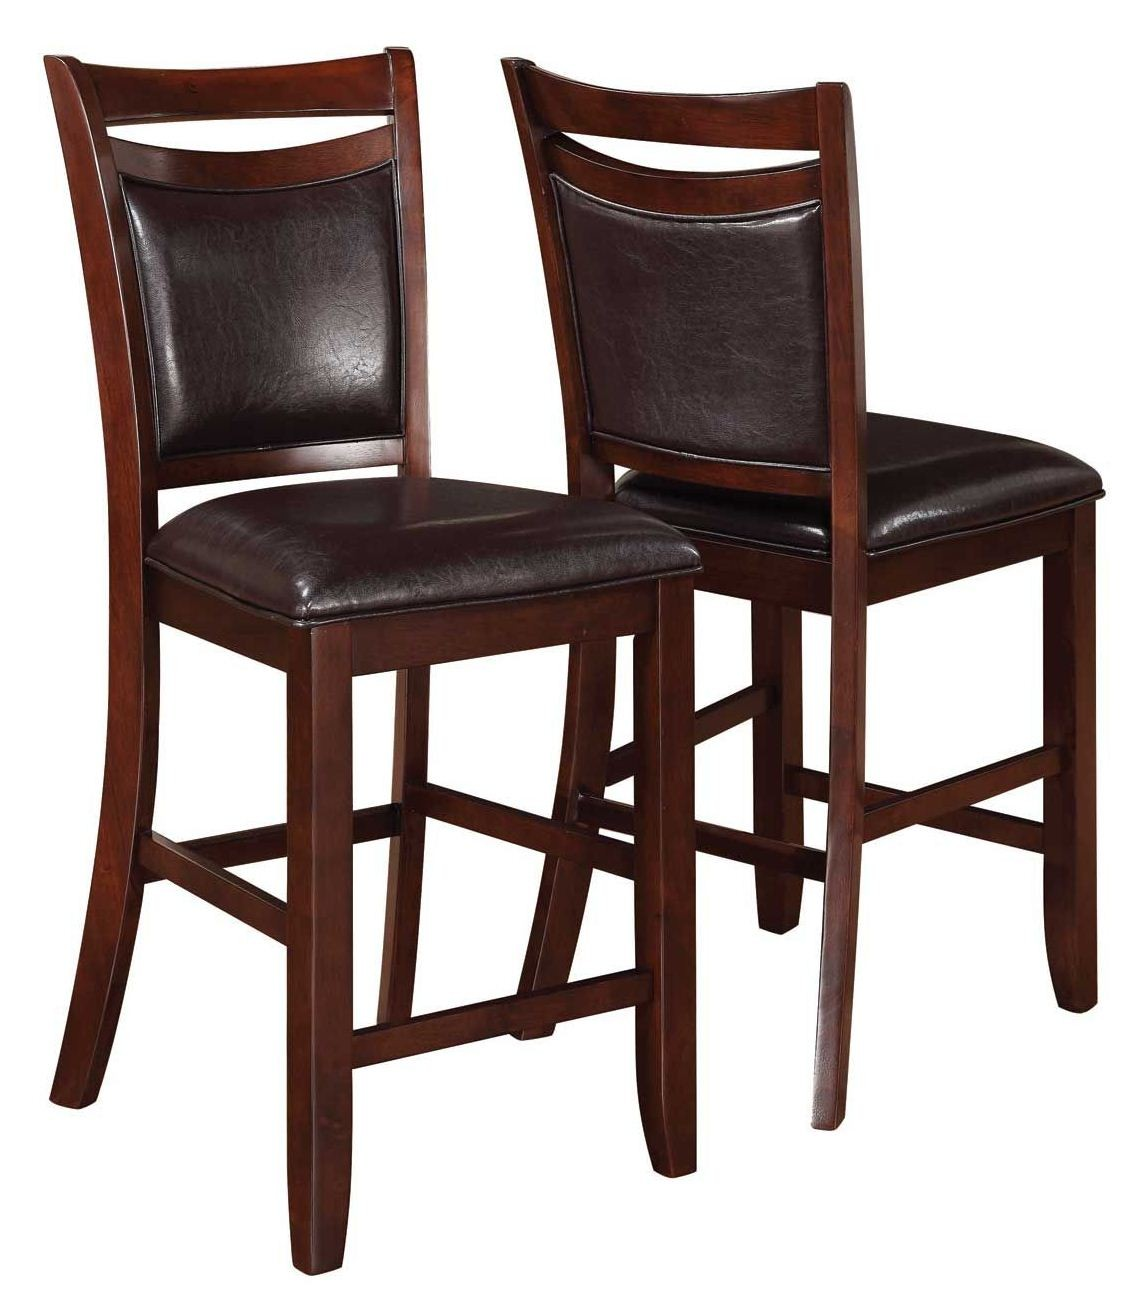 Dupree Counter Height Chair Set of 2 from Coaster 105479